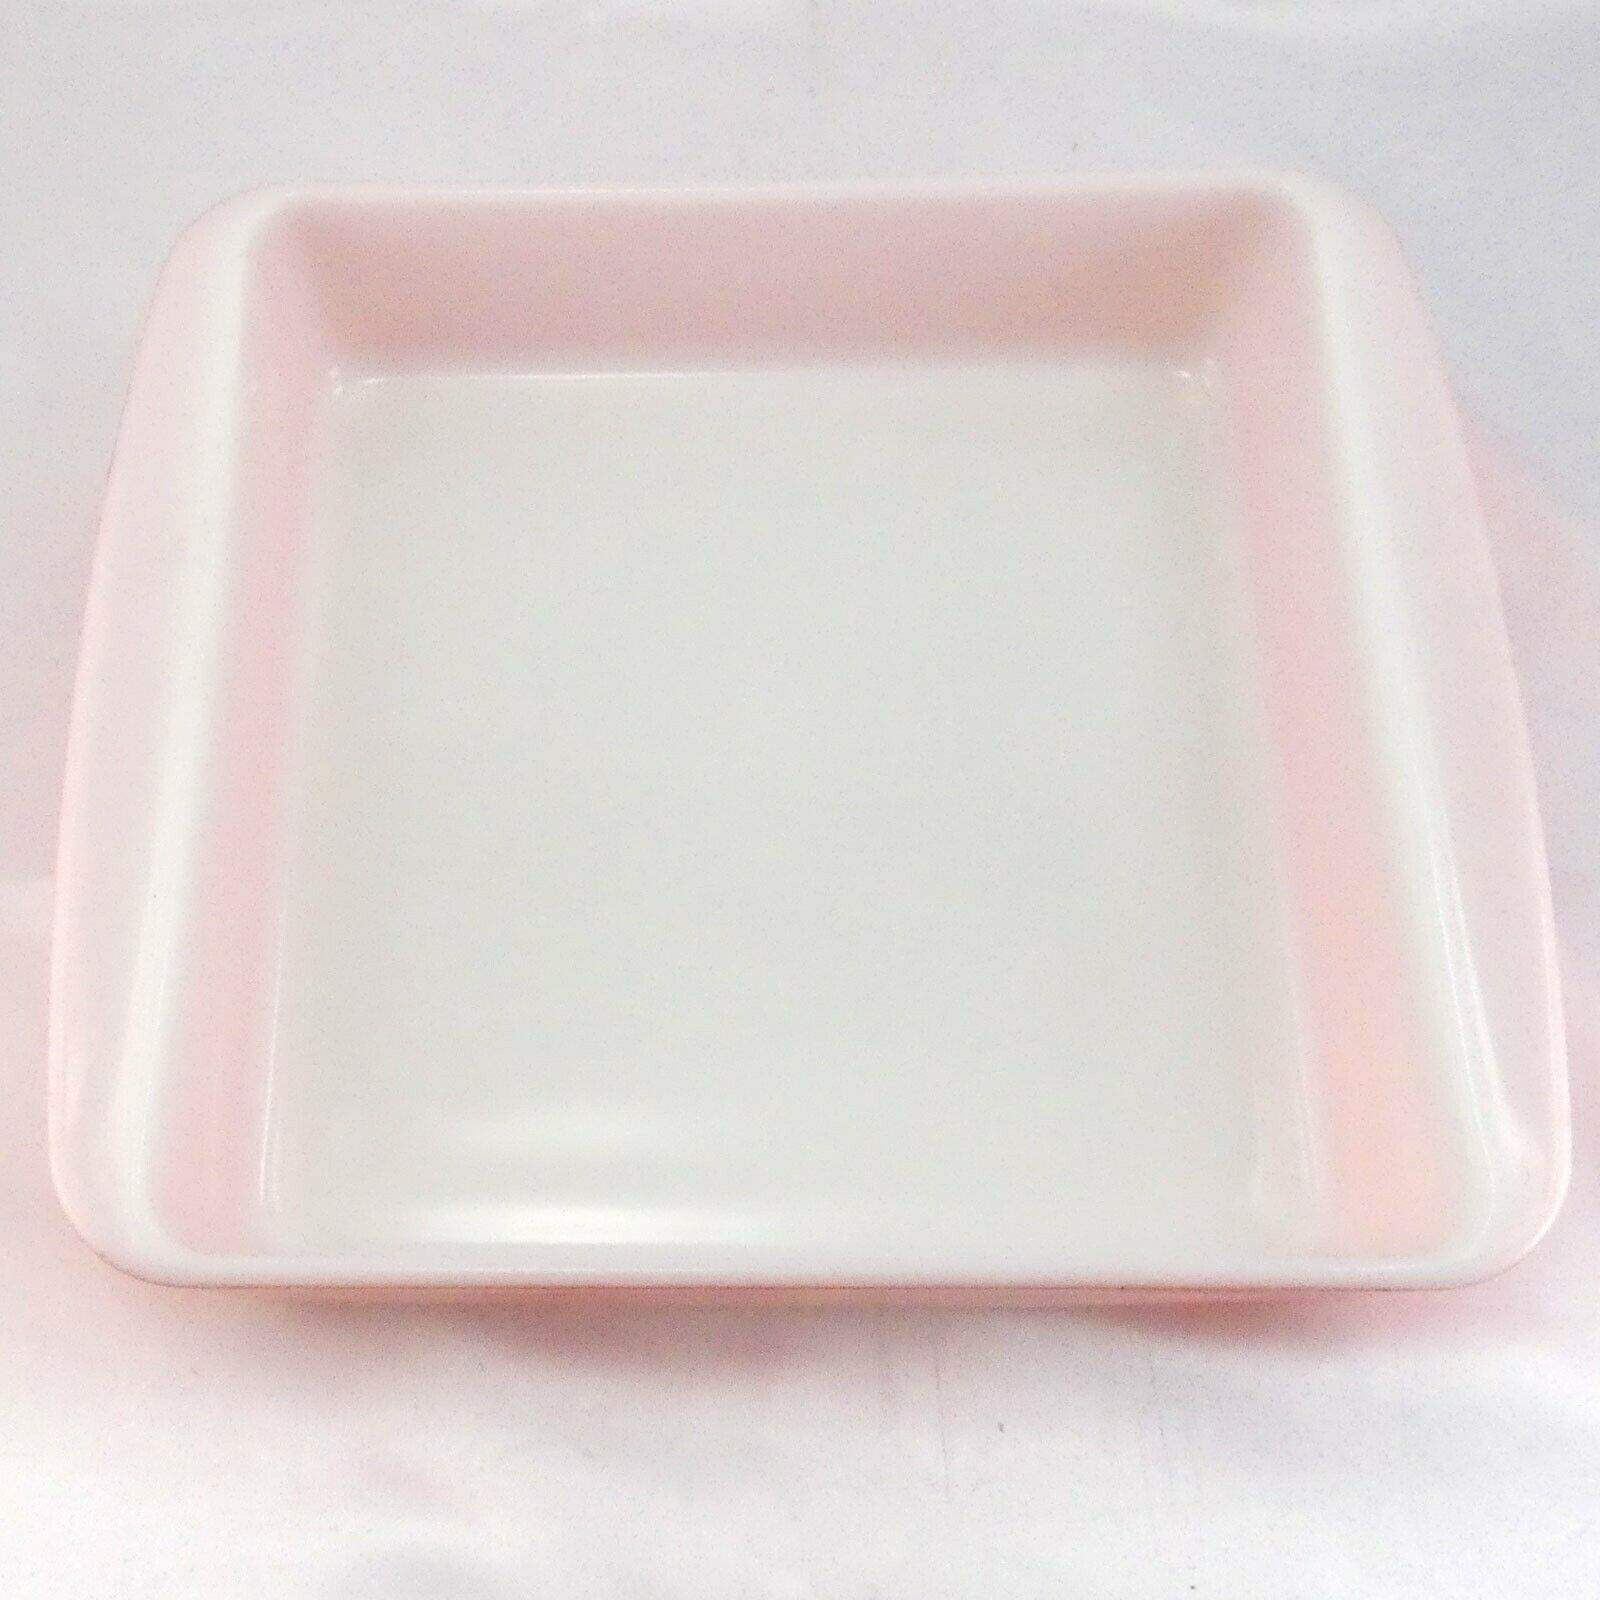 "Pyrex 222 Desert Dawn Square Baking Dish Vintage Speckled 8""x8"" Made in the USA image 6"